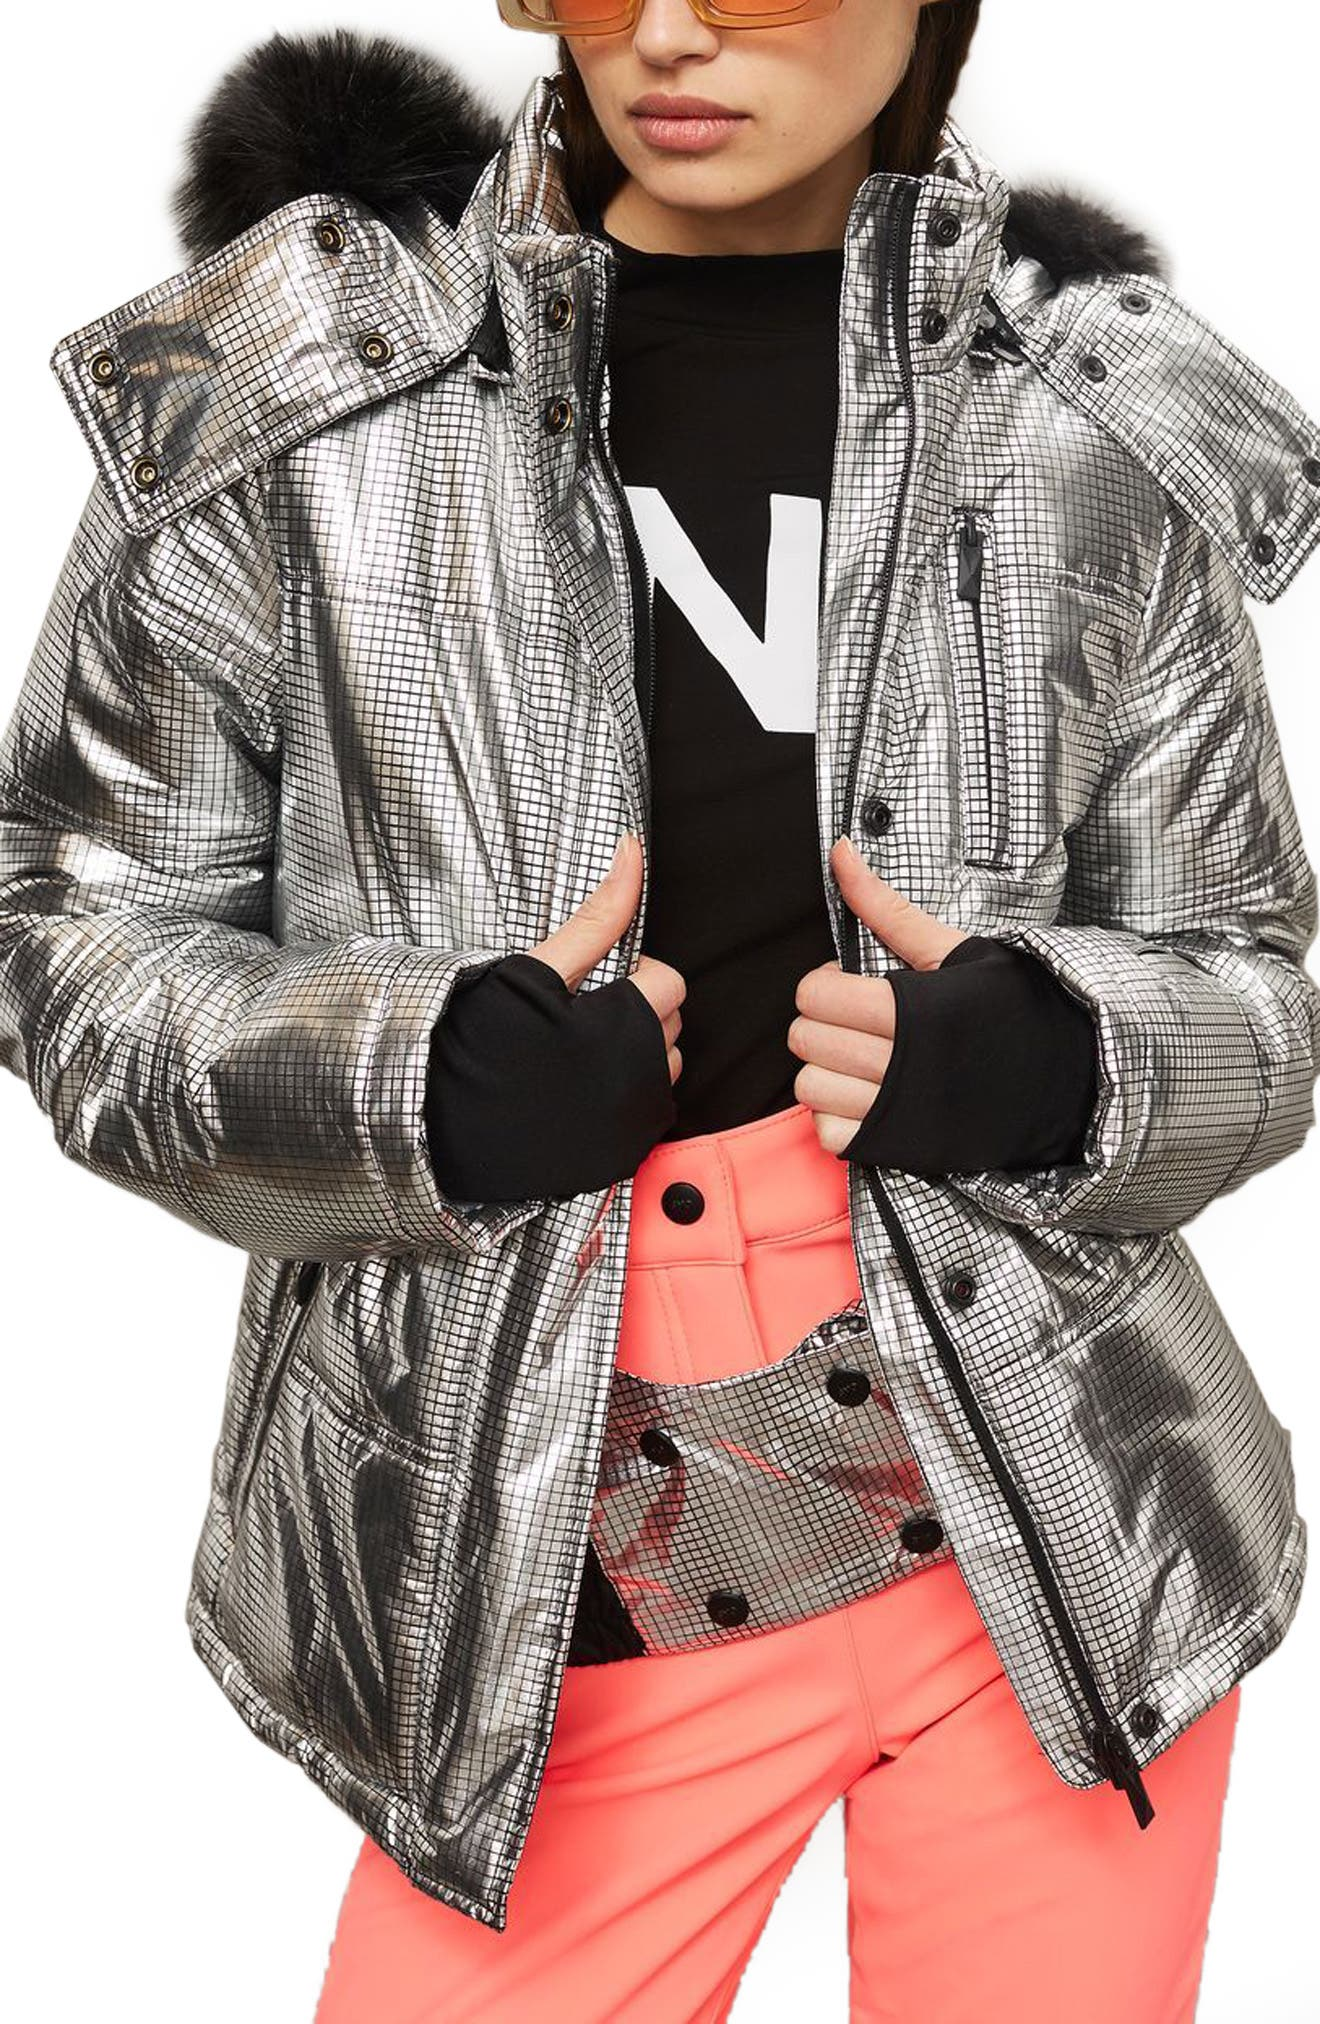 SNO Rio Faux Fur Hood Metallic Puffer Jacket,                         Main,                         color, Silver